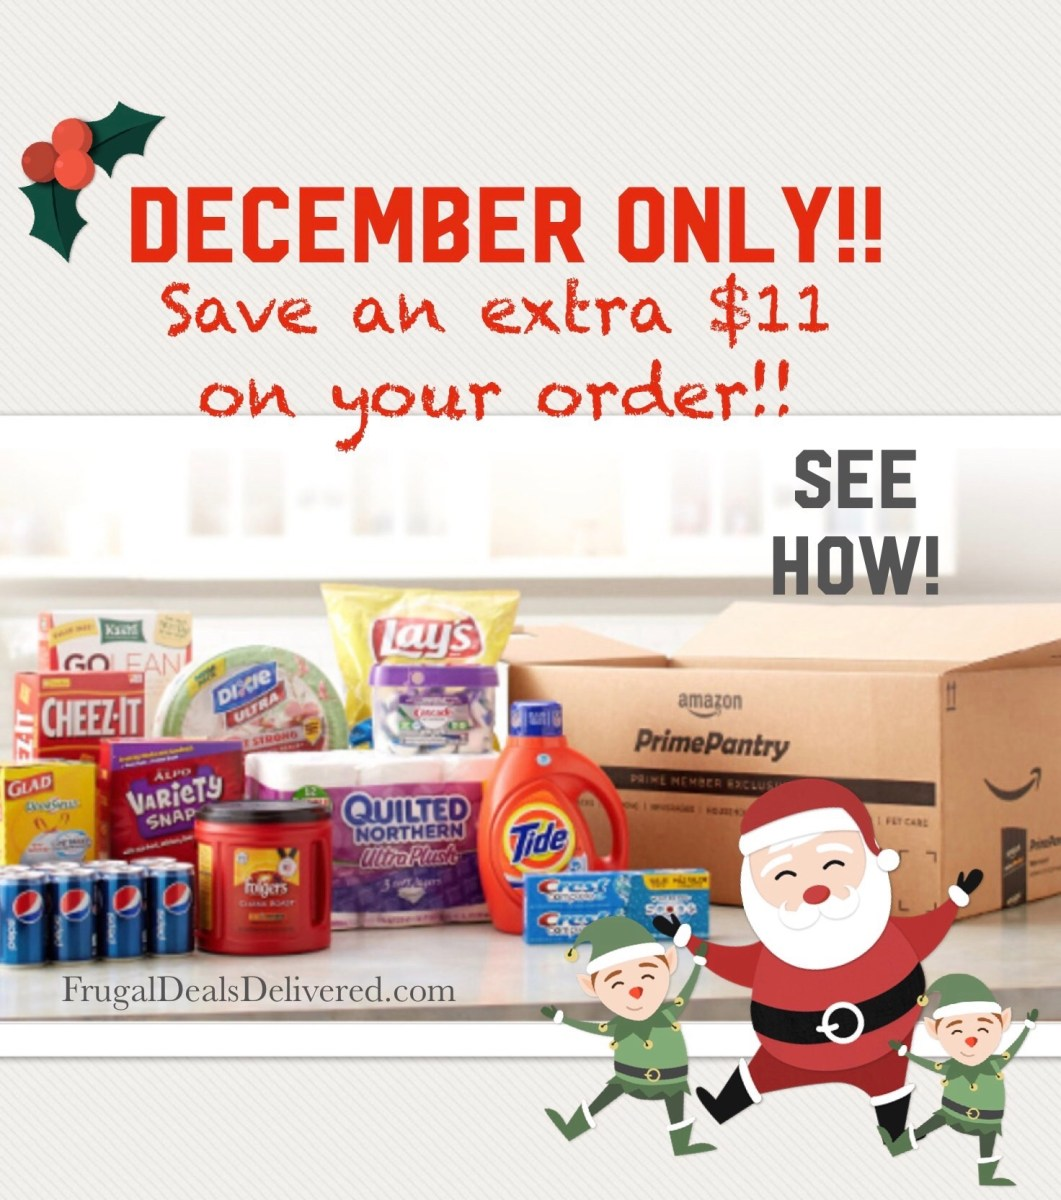 Prime Pantry - *BEST FRUGAL DEALS* for December!